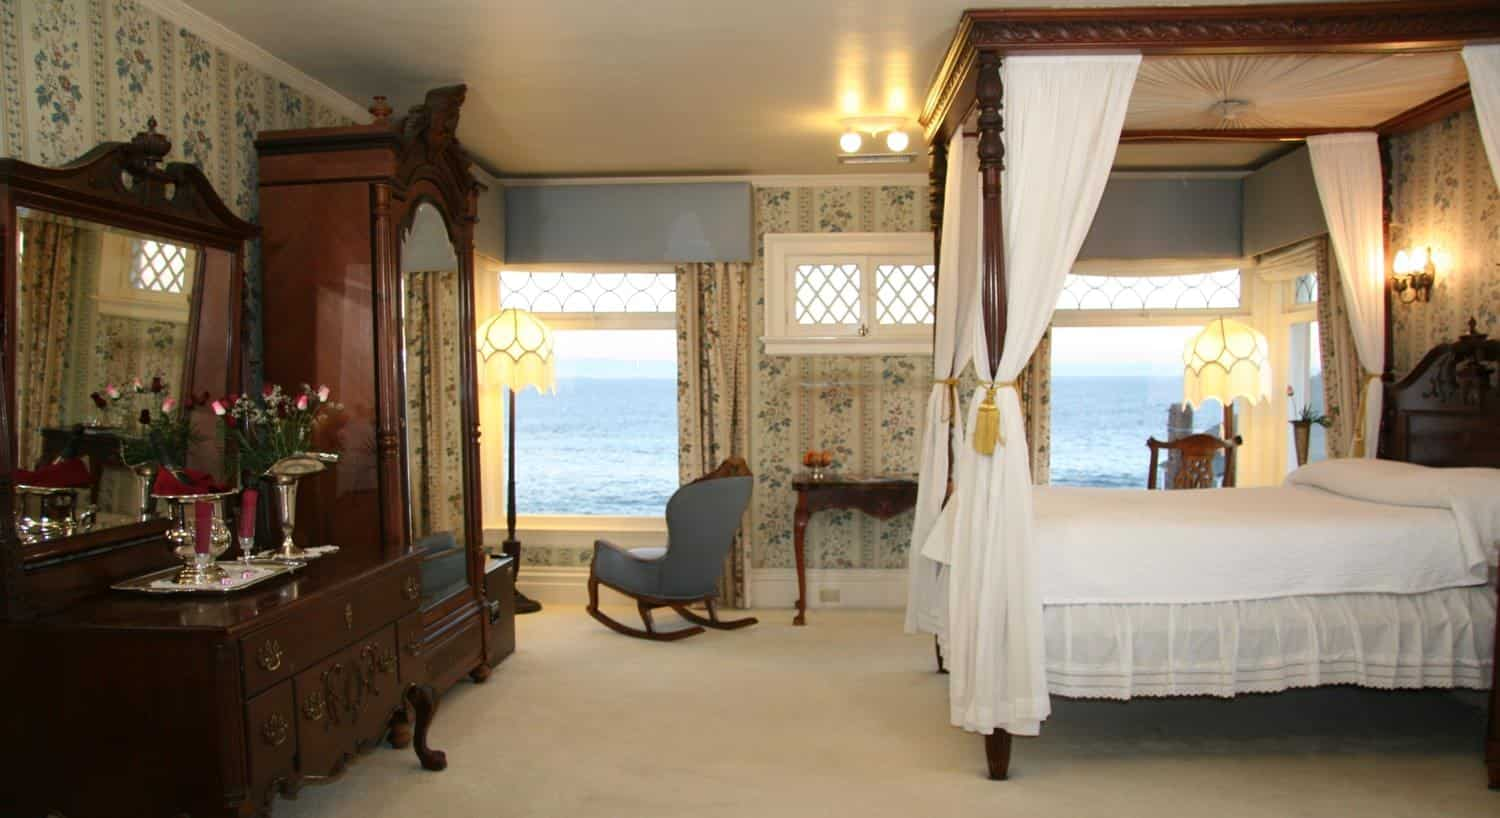 Parke guest room, floral and striped walls, windows overlooking the ocean, canopy bed, mirrored armoire and mirrored dresser